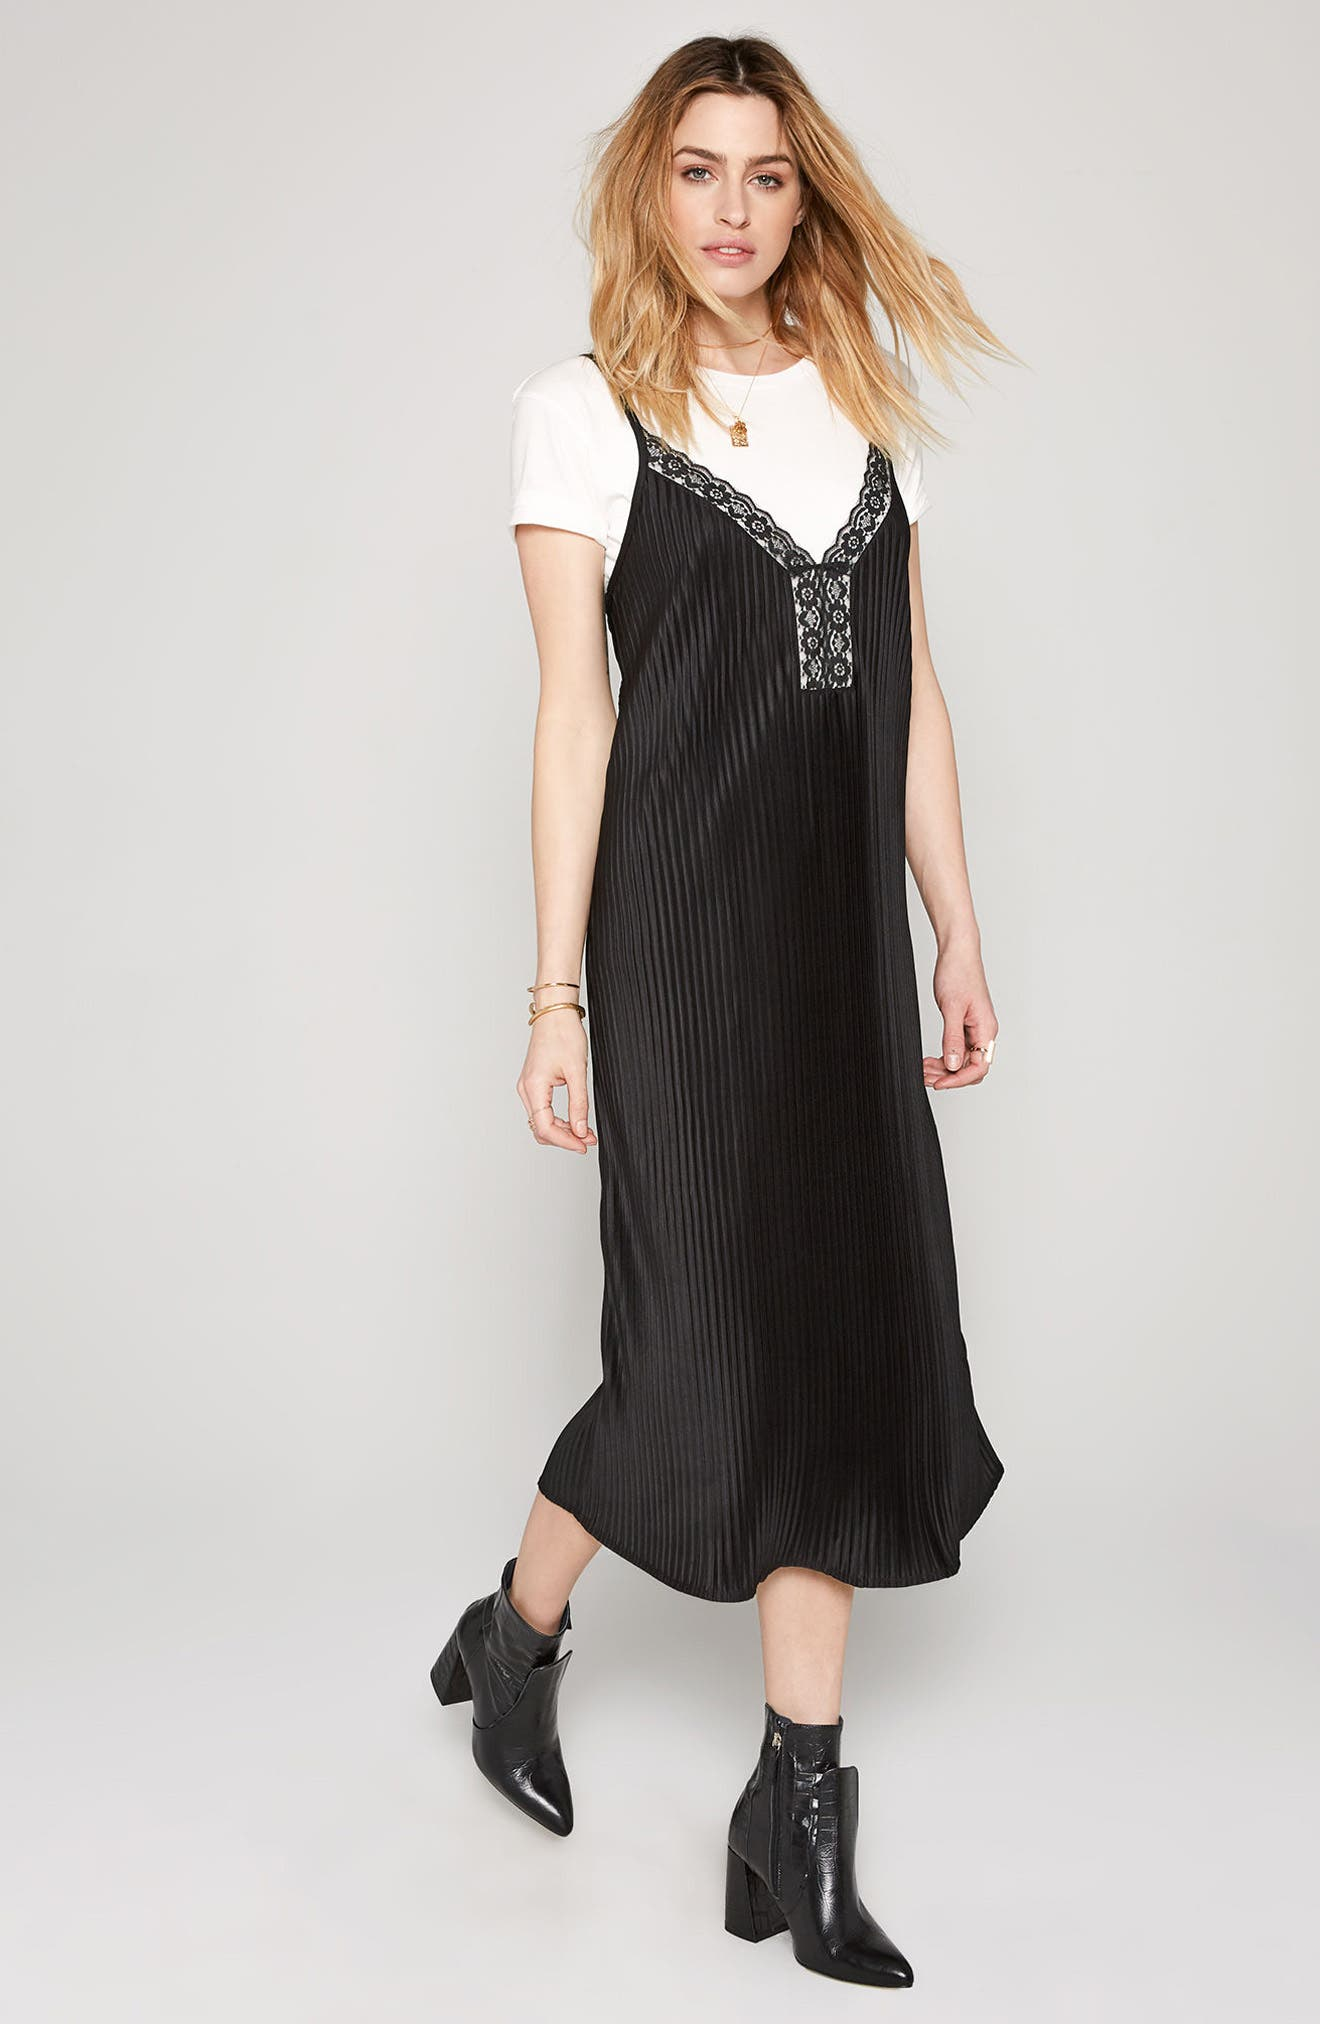 Sweet Surrender Slipdress,                             Alternate thumbnail 3, color,                             Black